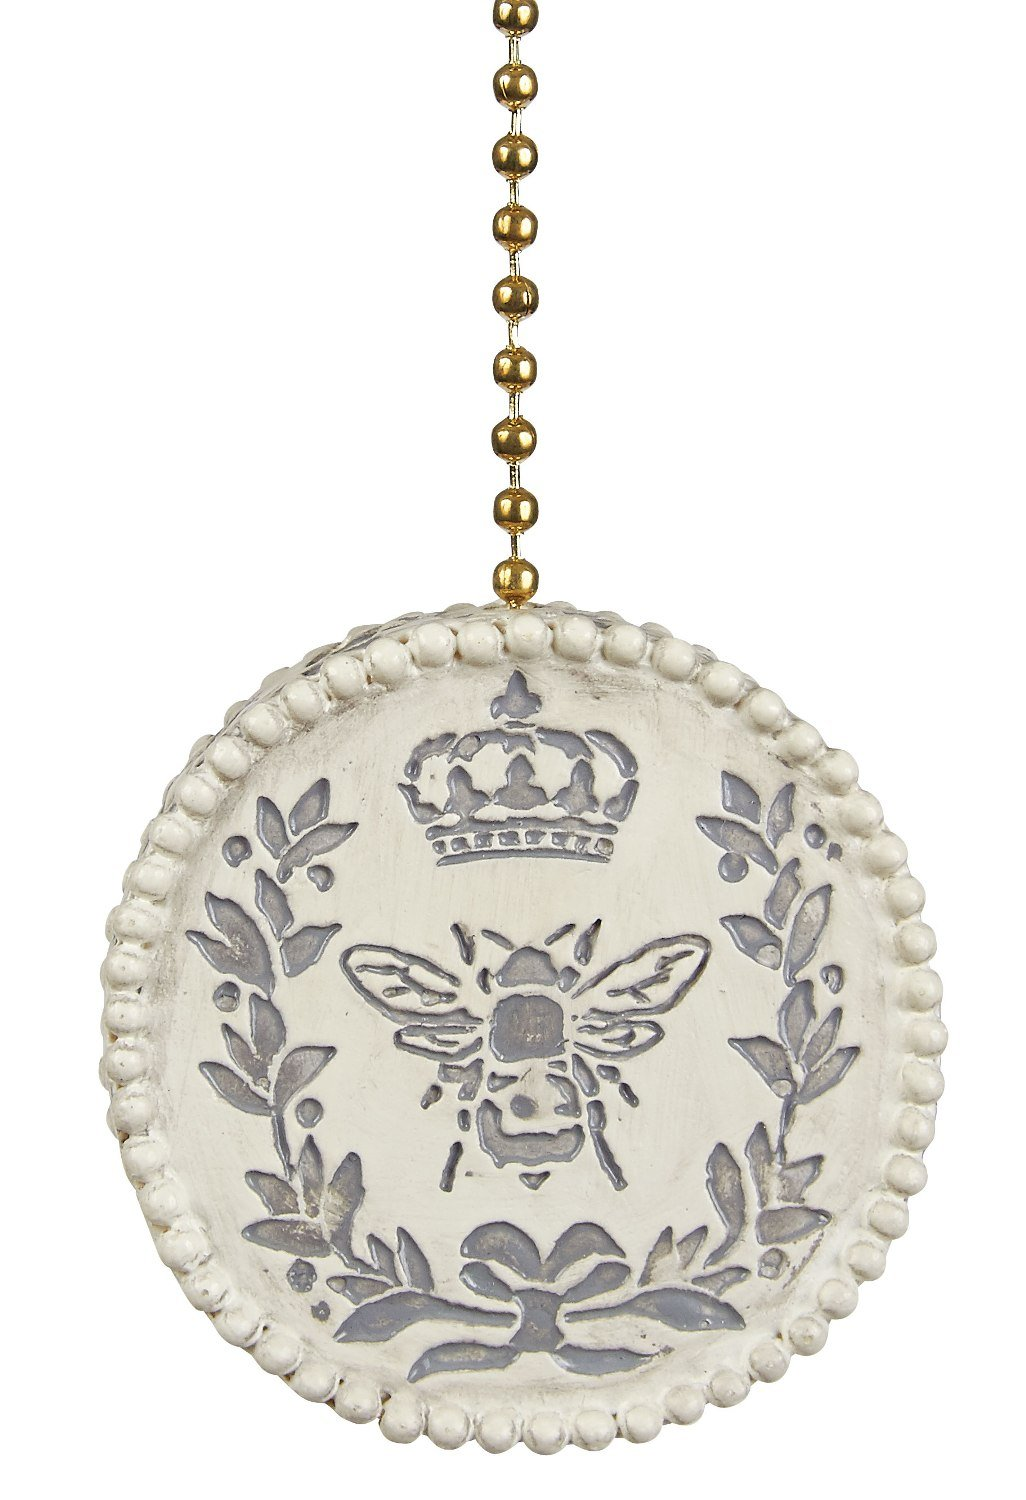 Antiqued Queen Bee Ceiling Fan Light Dimensional Pull by Clementine Designs